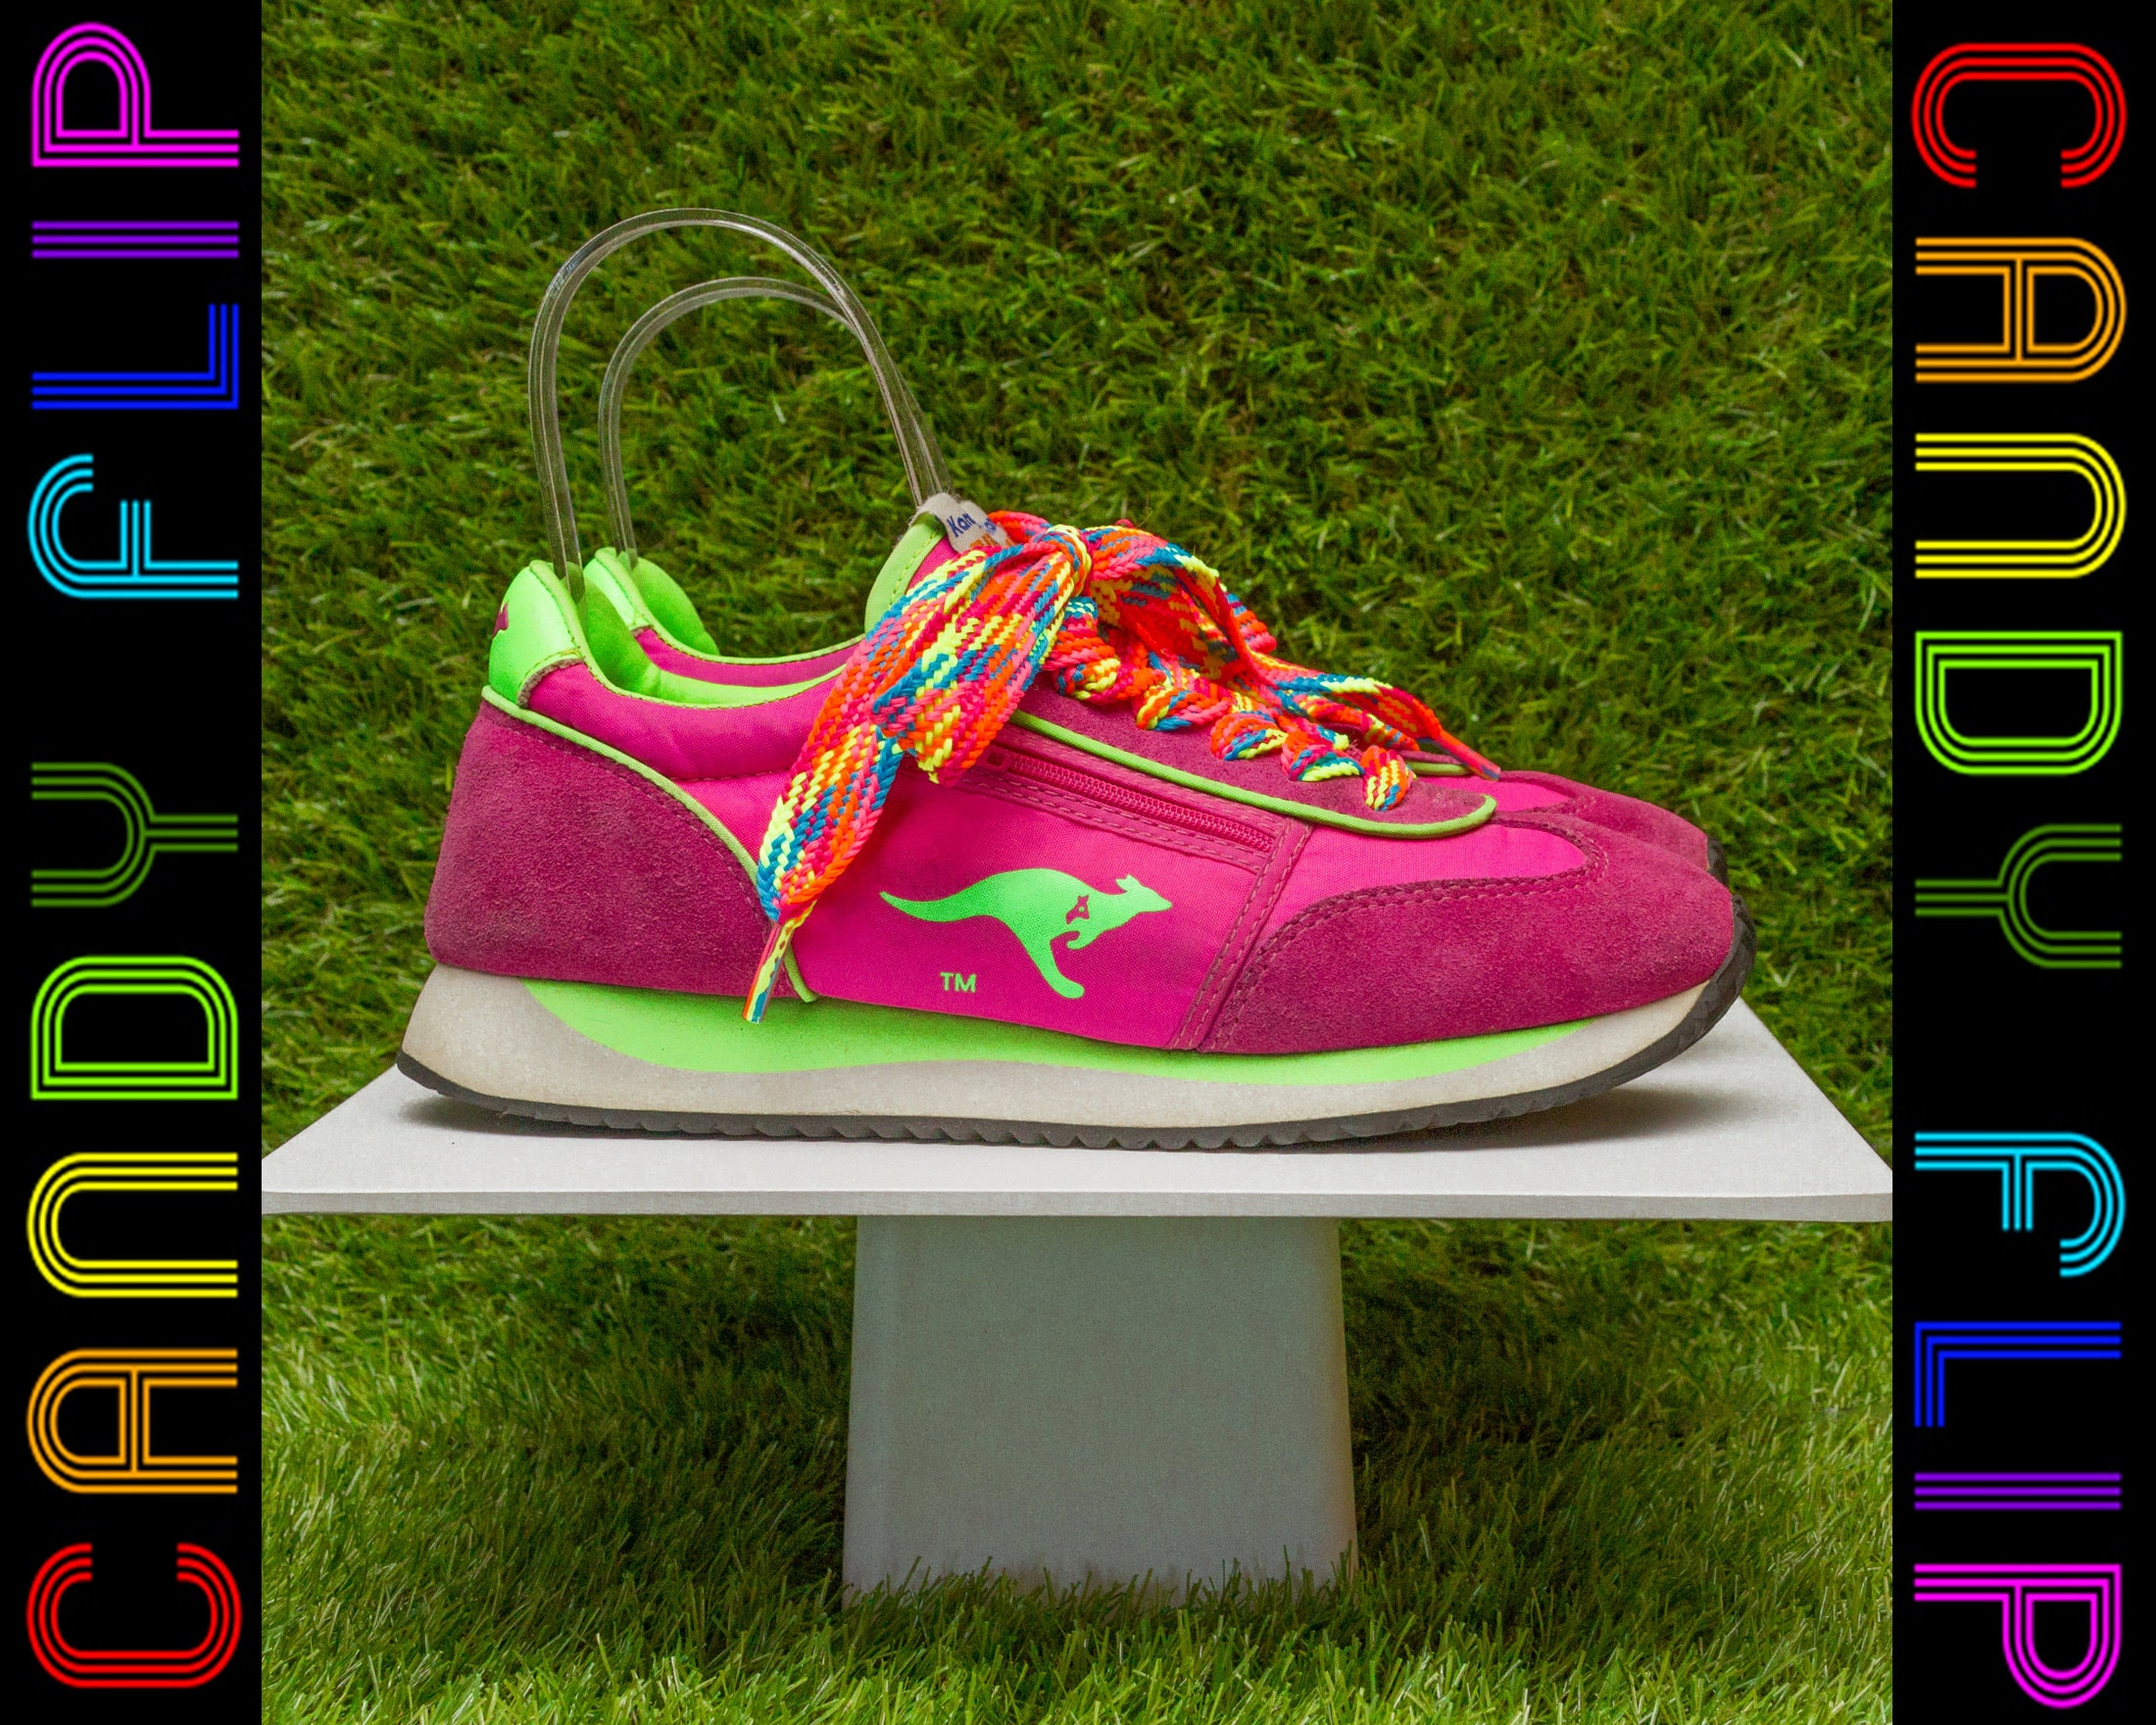 60bac136a2d2 Vintage 80s 90s Neon Rainbow Fat Laces Pink Lime Green Yellow KangaROOS  Sneakers Zippered Pouch Suede Nylon Tennis Running Trainer Shoes 7.5